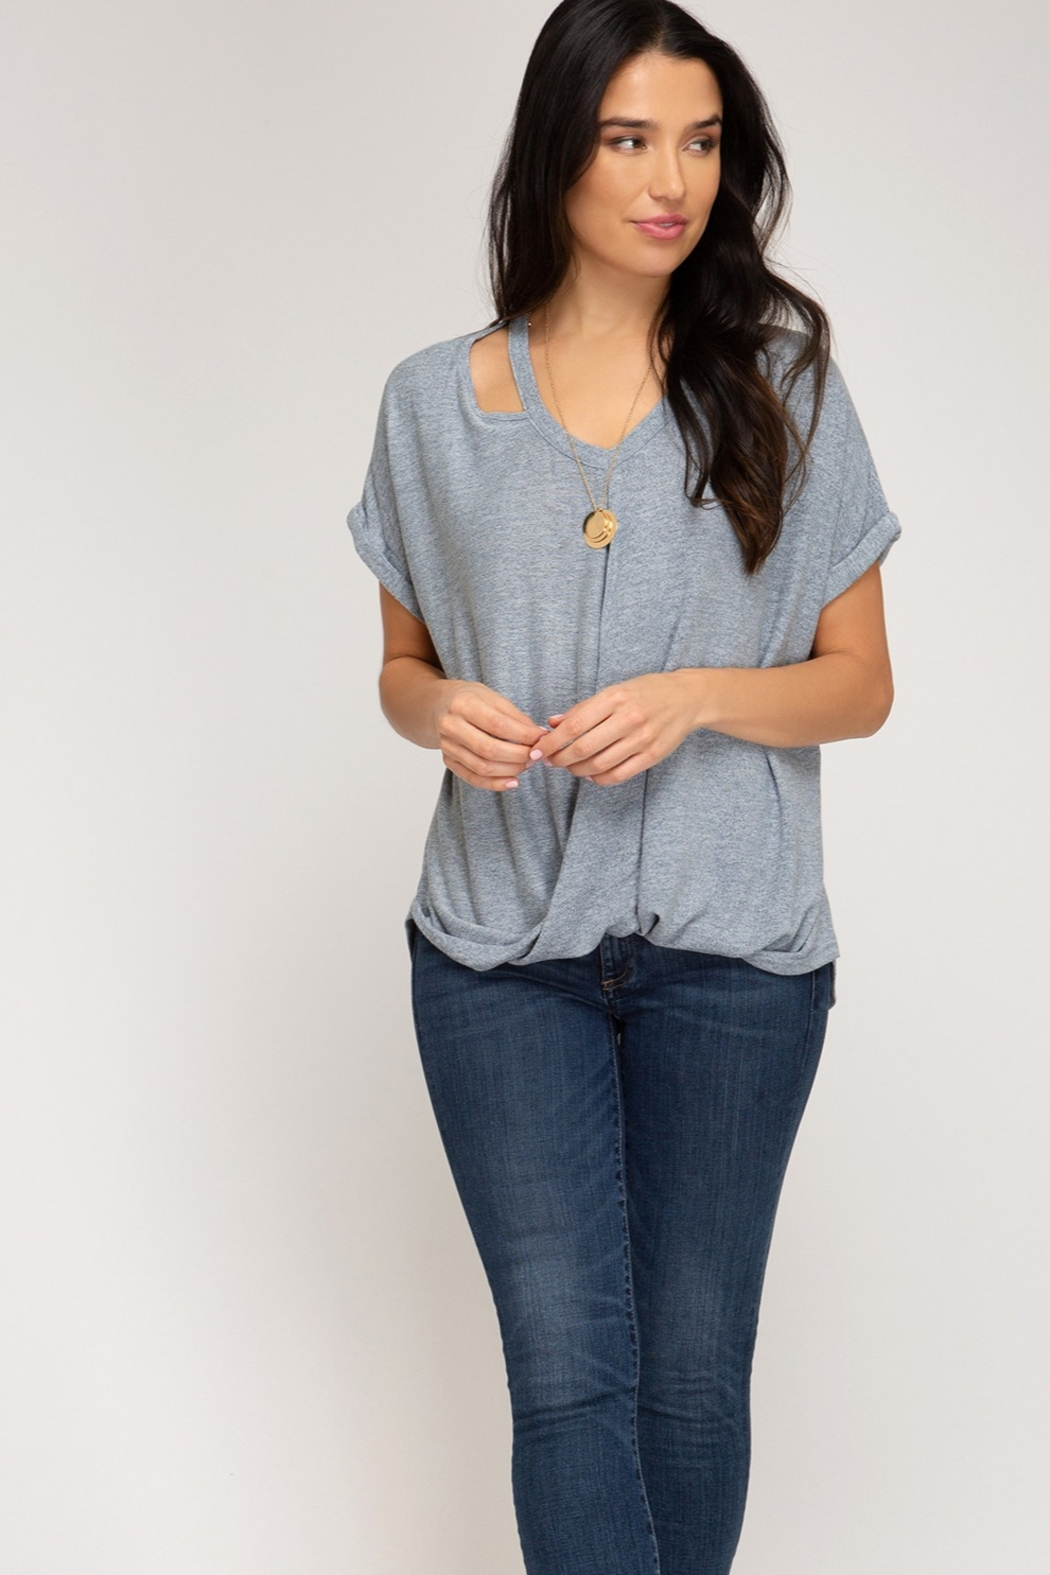 She and Sky Surpliced Top With Neck Cutouts - Back Cropped Image